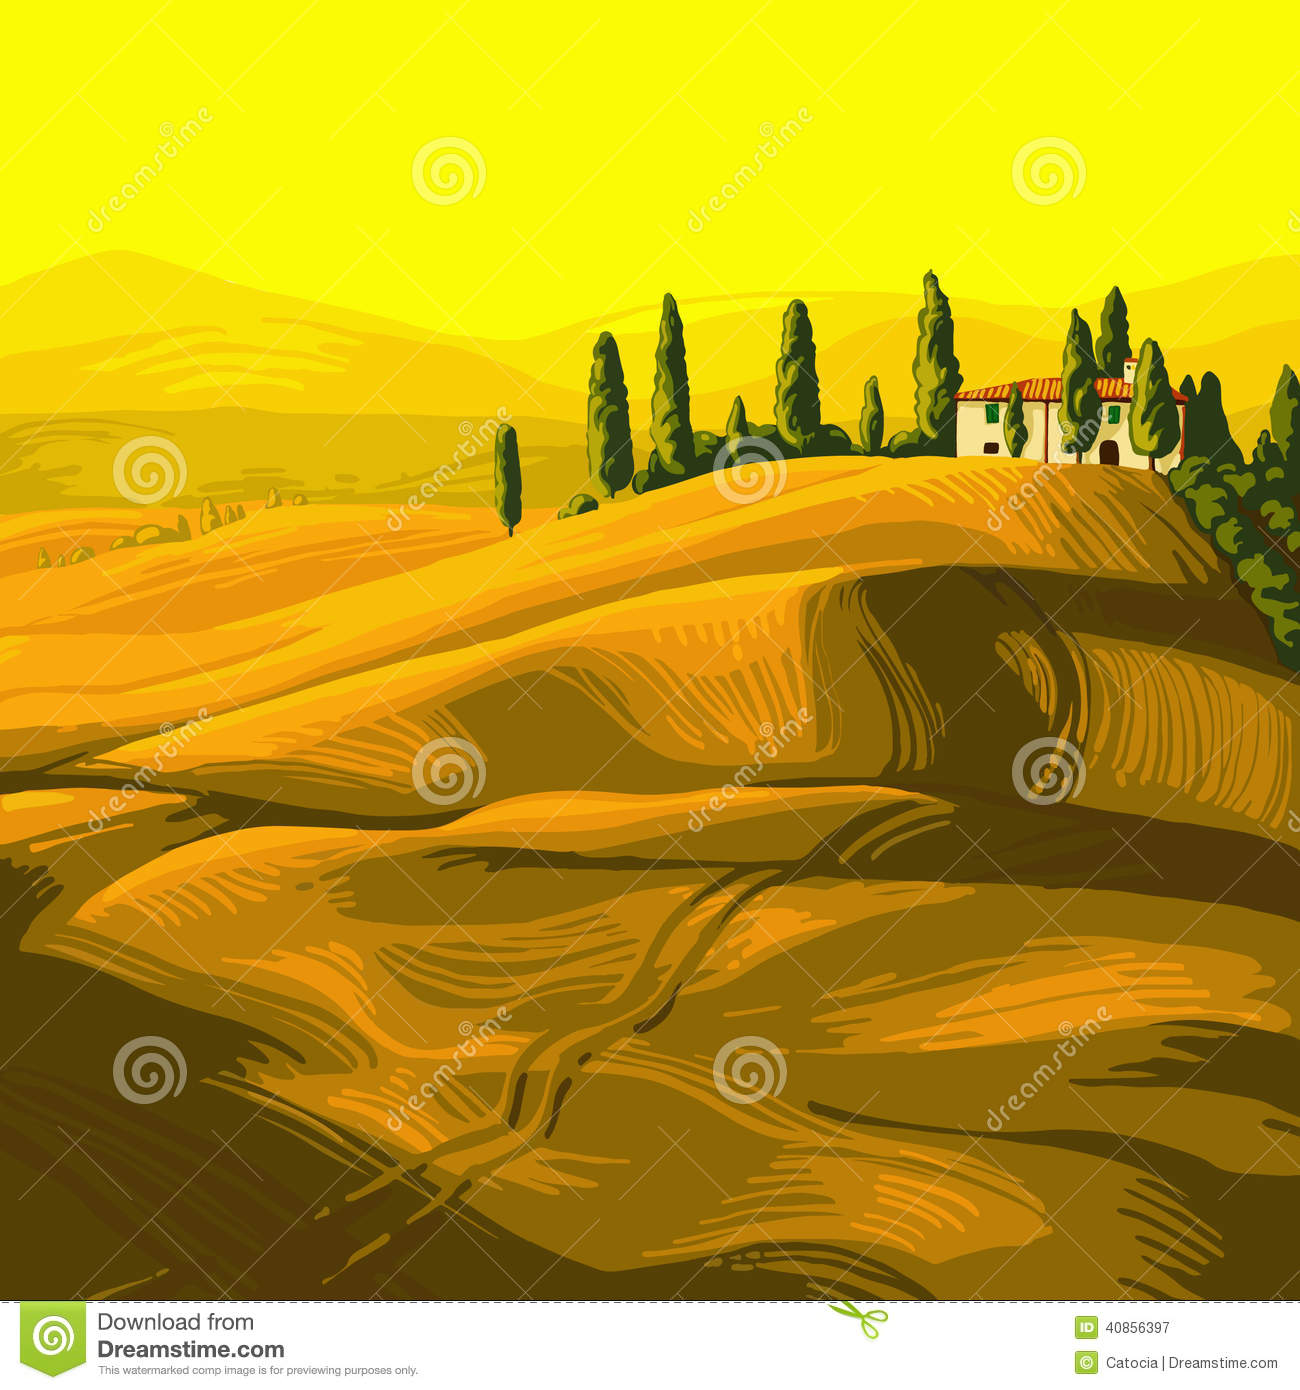 Tuscany clipart 20 free Cliparts  Download images on